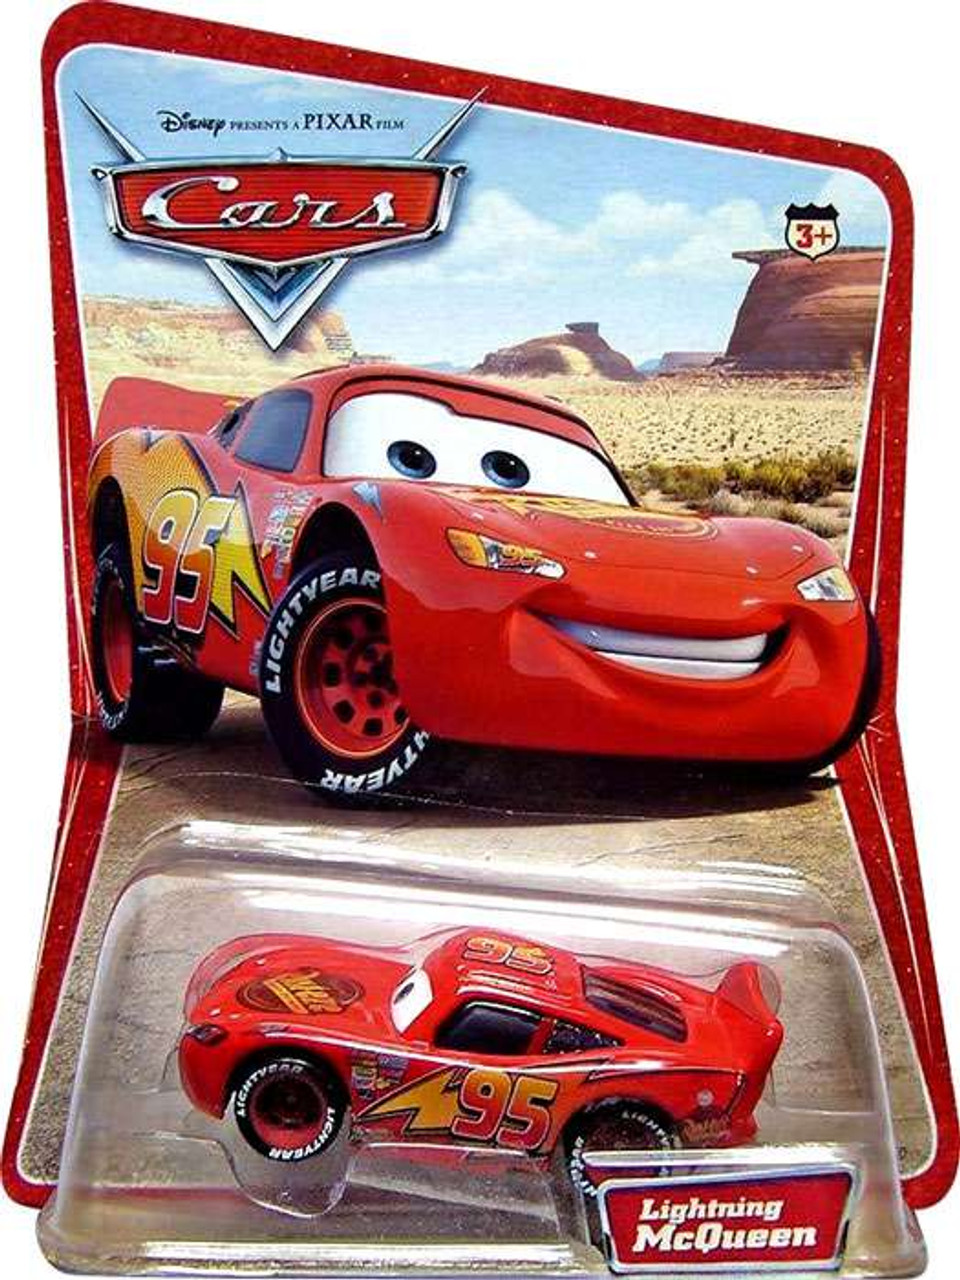 Disney Pixar Cars Series 1 Lightning Mcqueen 155 Diecast Car Mattel